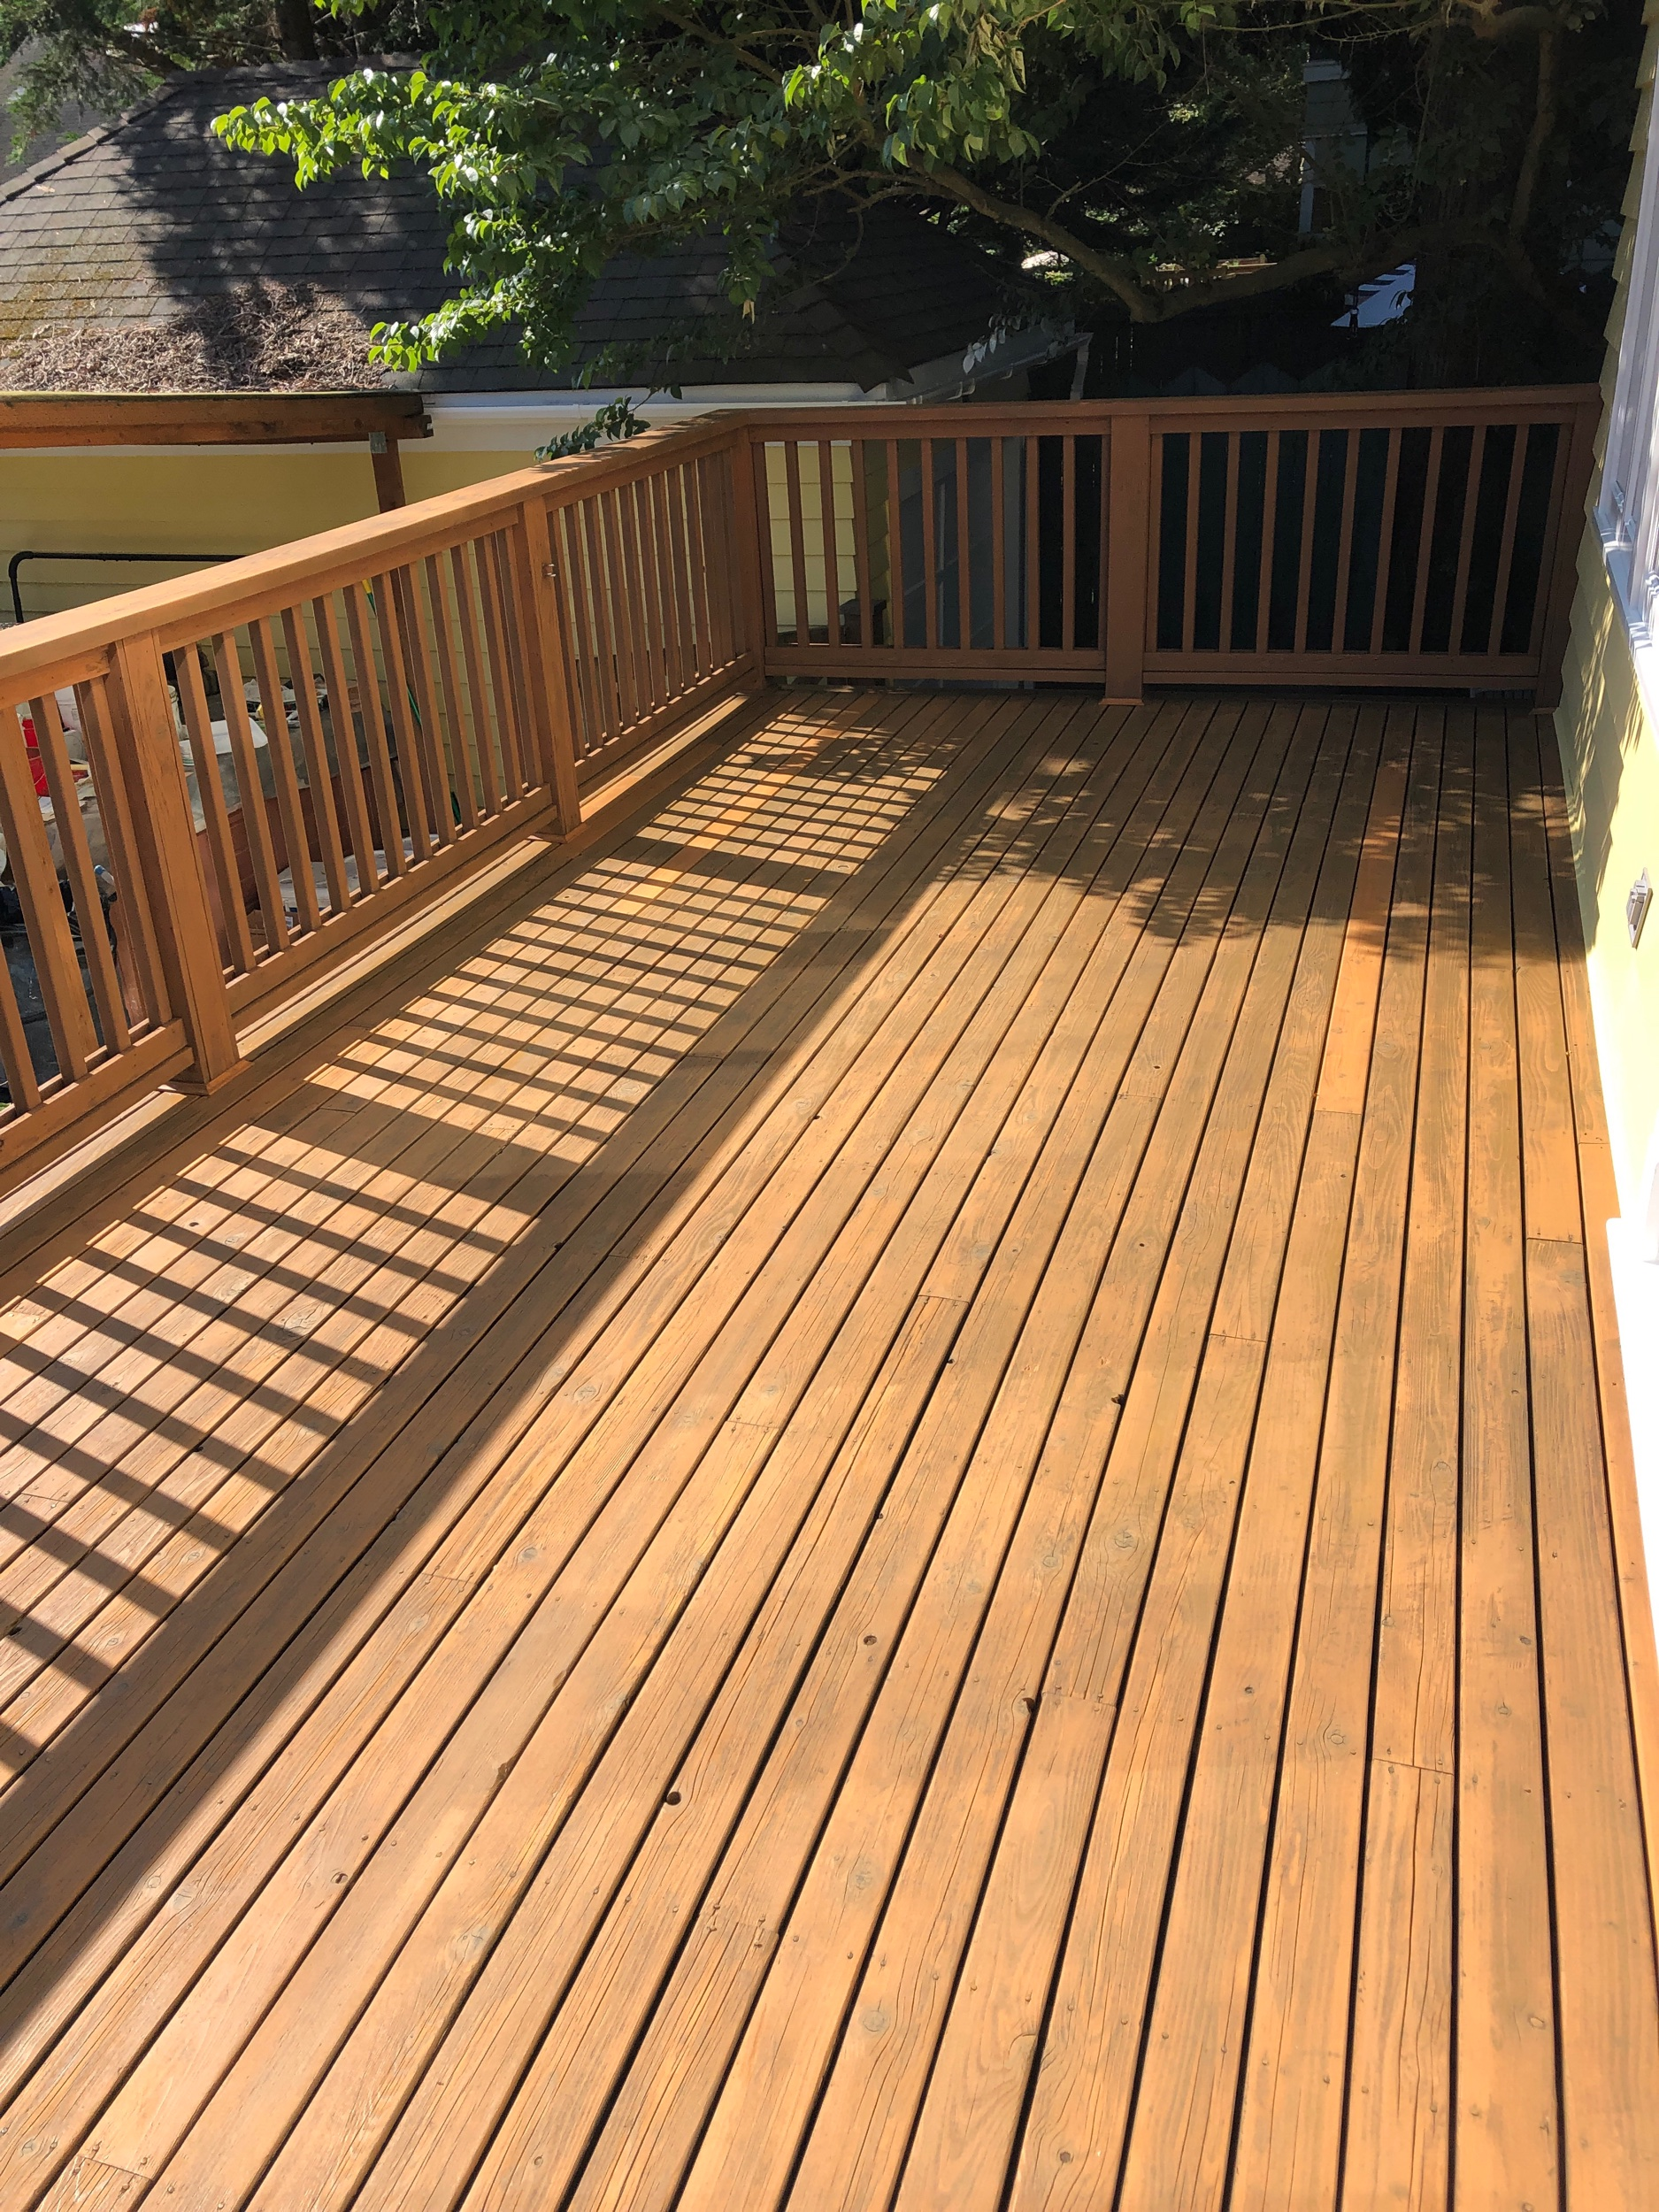 Sanded and stained old wooden Deck.